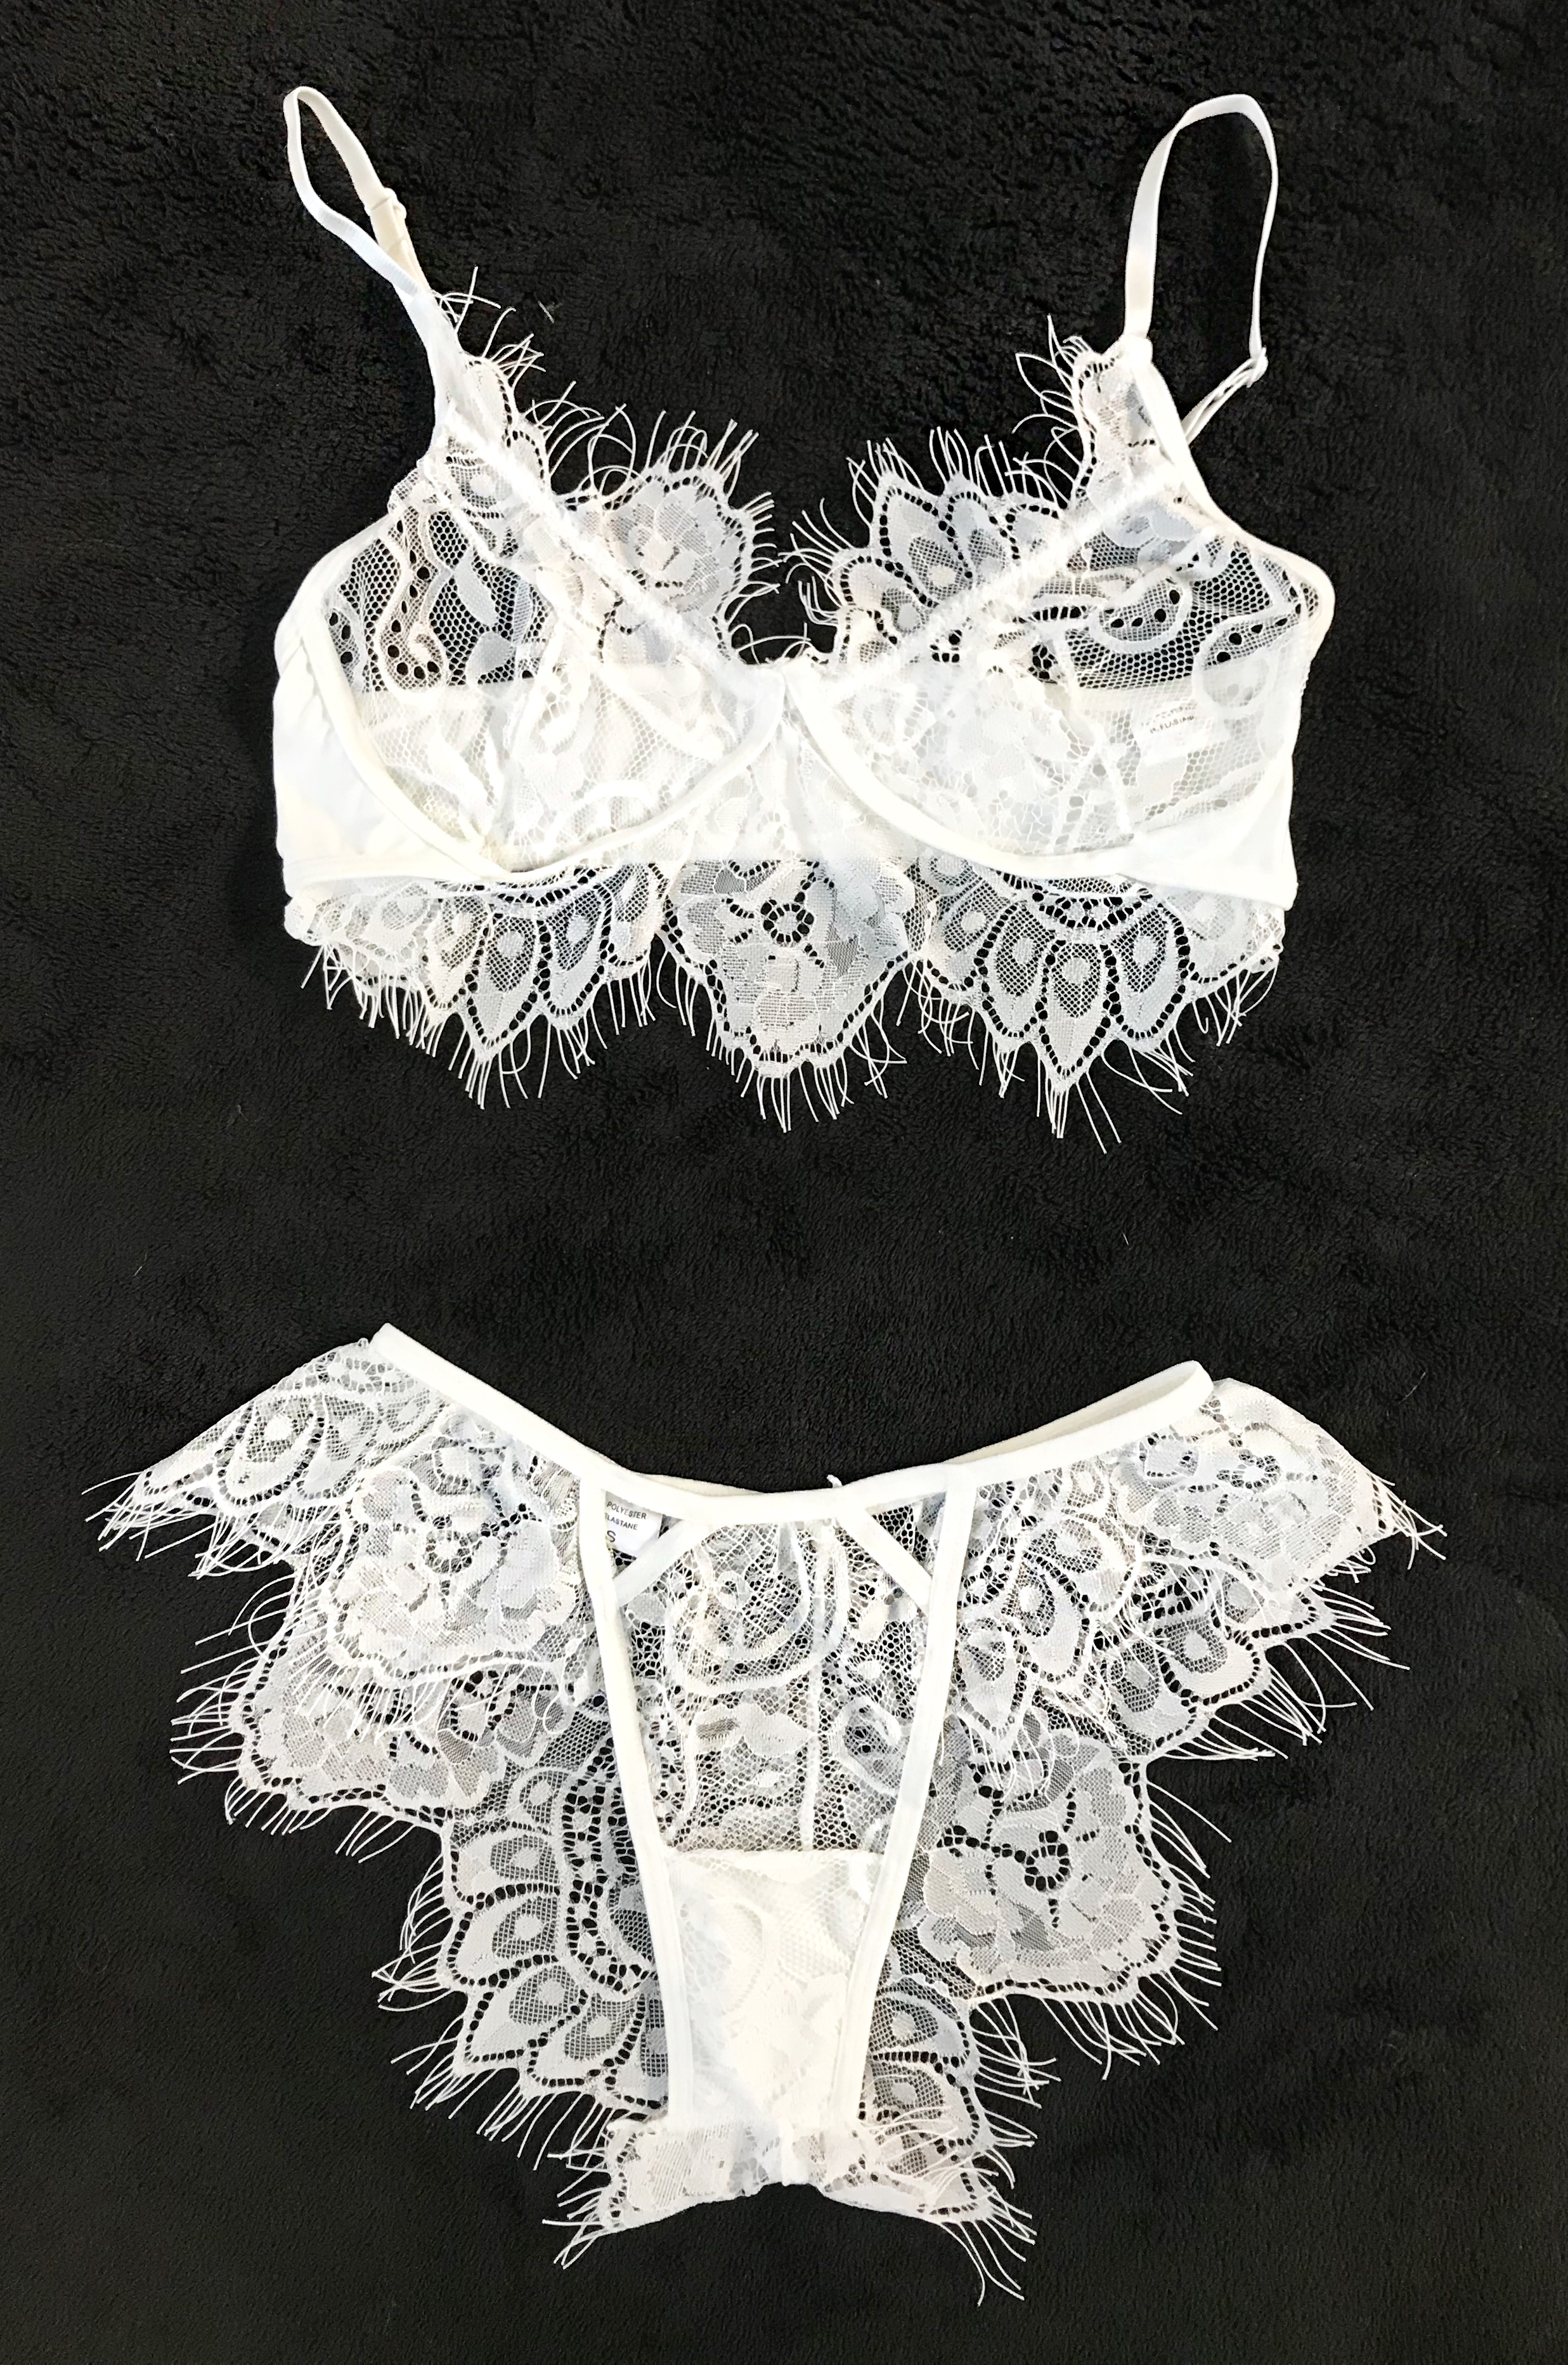 2 piece lace lingerie set - WHITESBra Type: WirelessPanty Type: Briefs$23